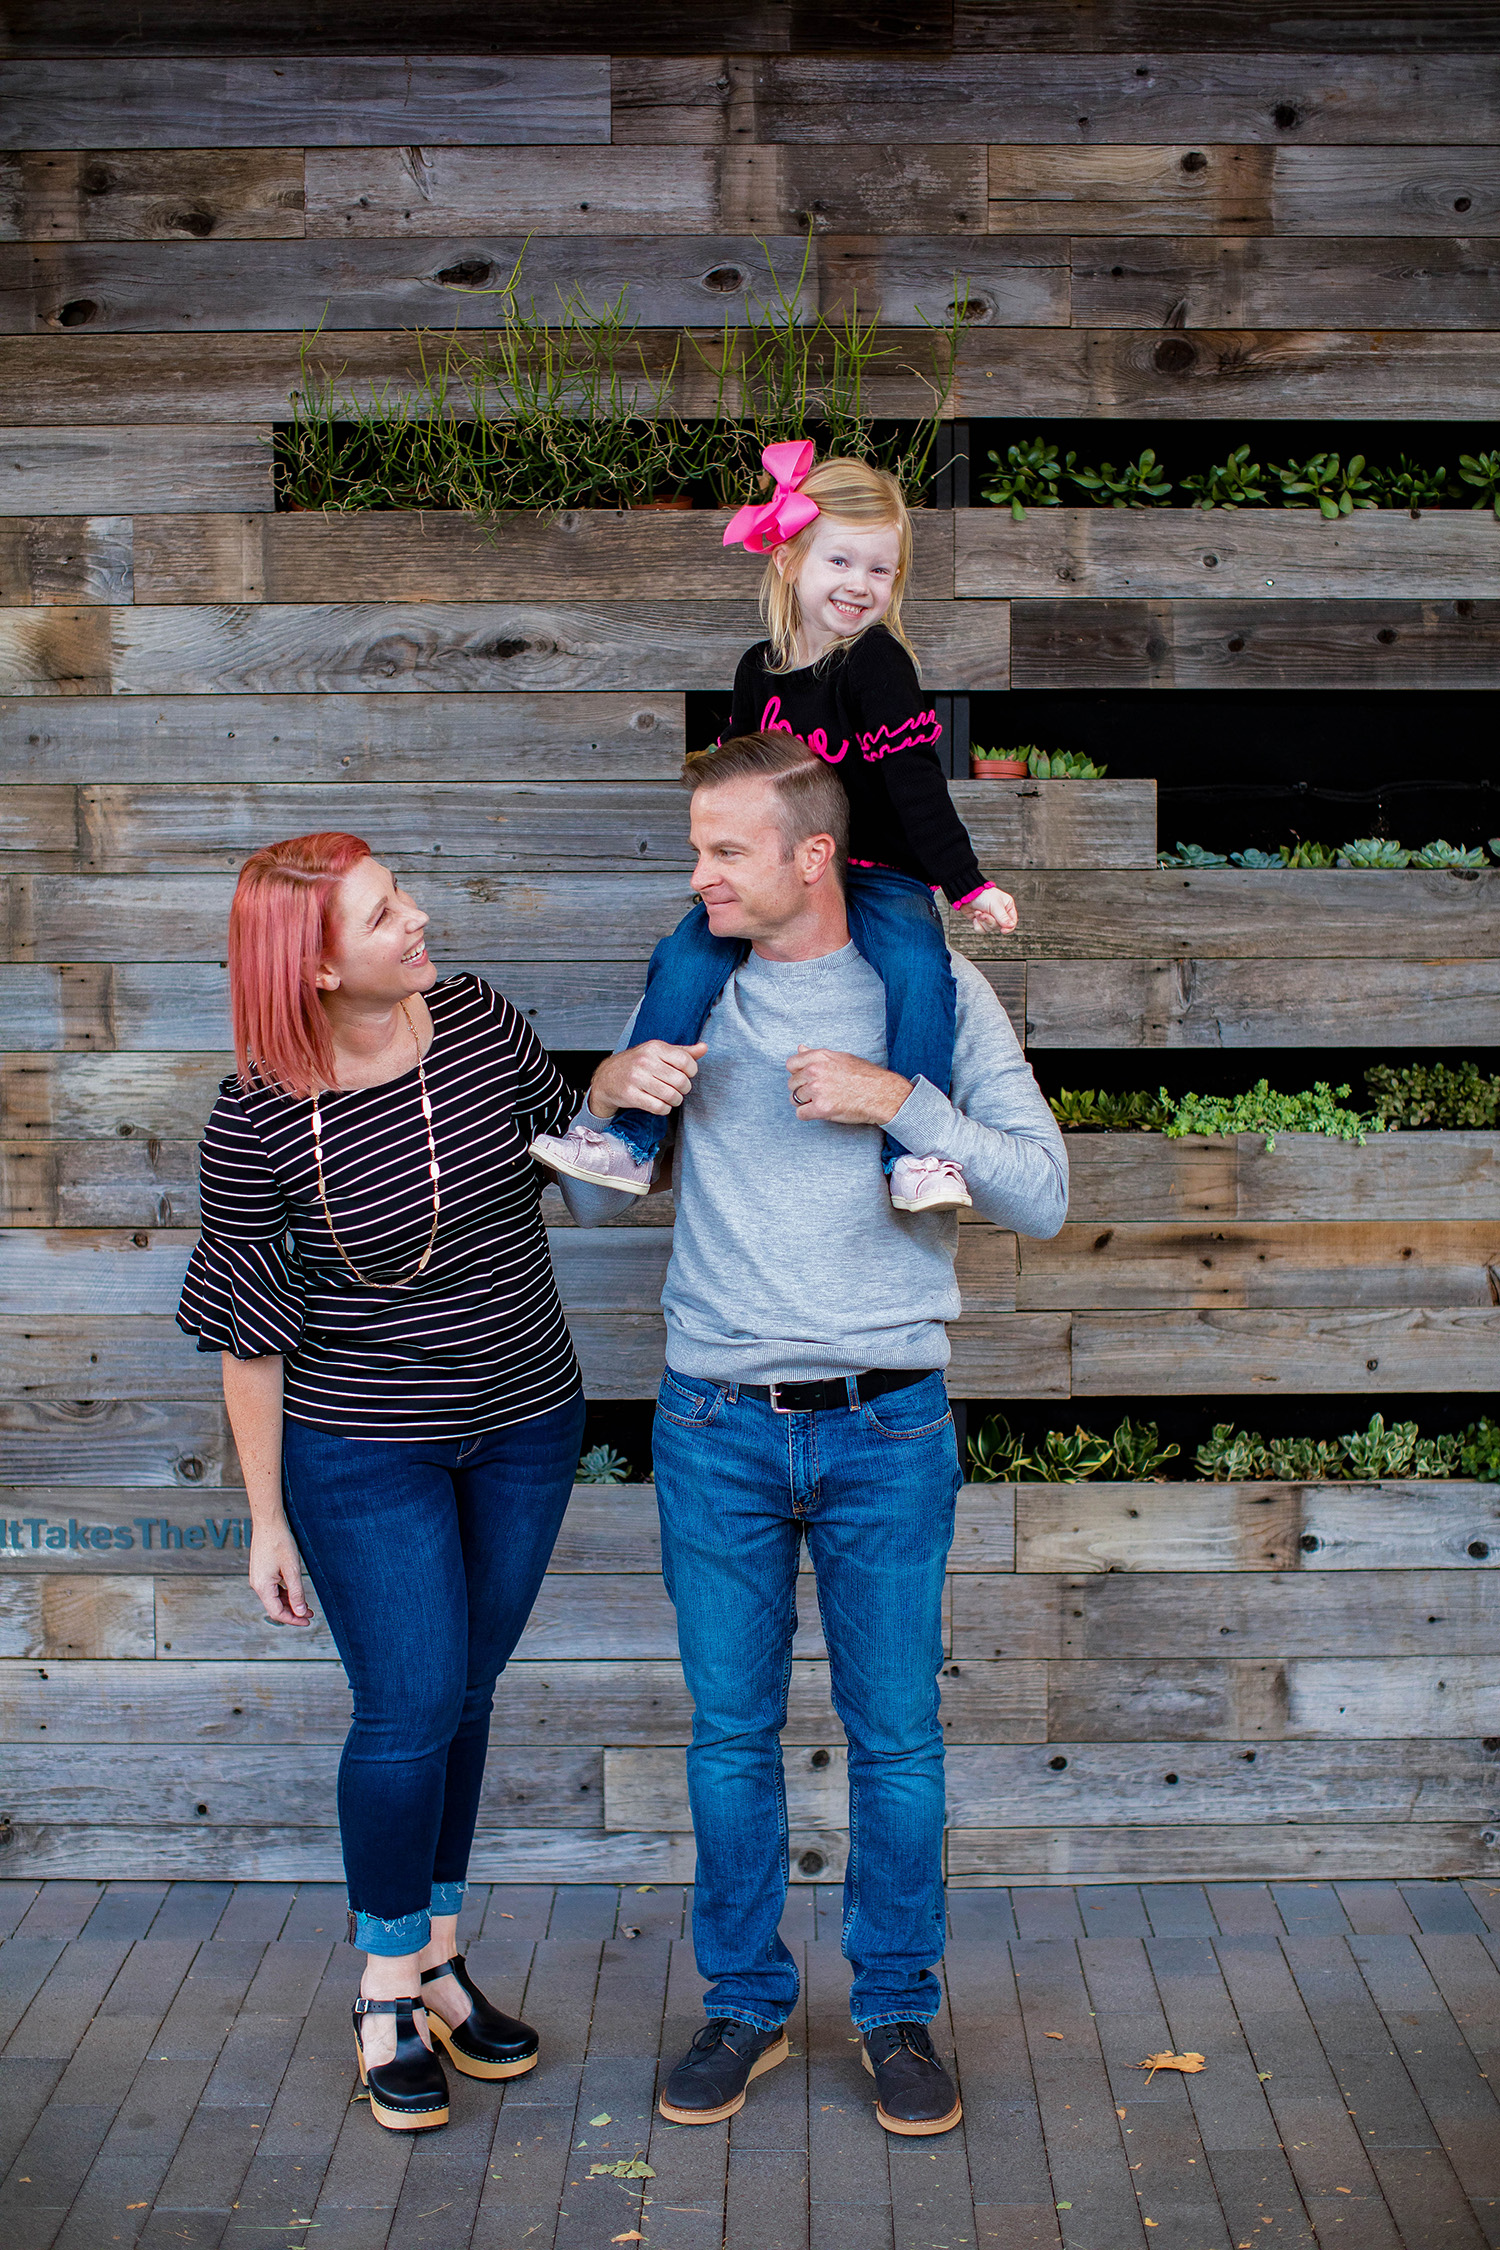 The Stitch Fix Review November 2018 is a special one......we're talking Family Christmas Picture Outfits!  All three of us worked with Stitch Fix to style us for our family holiday photos and had a ton of fun!